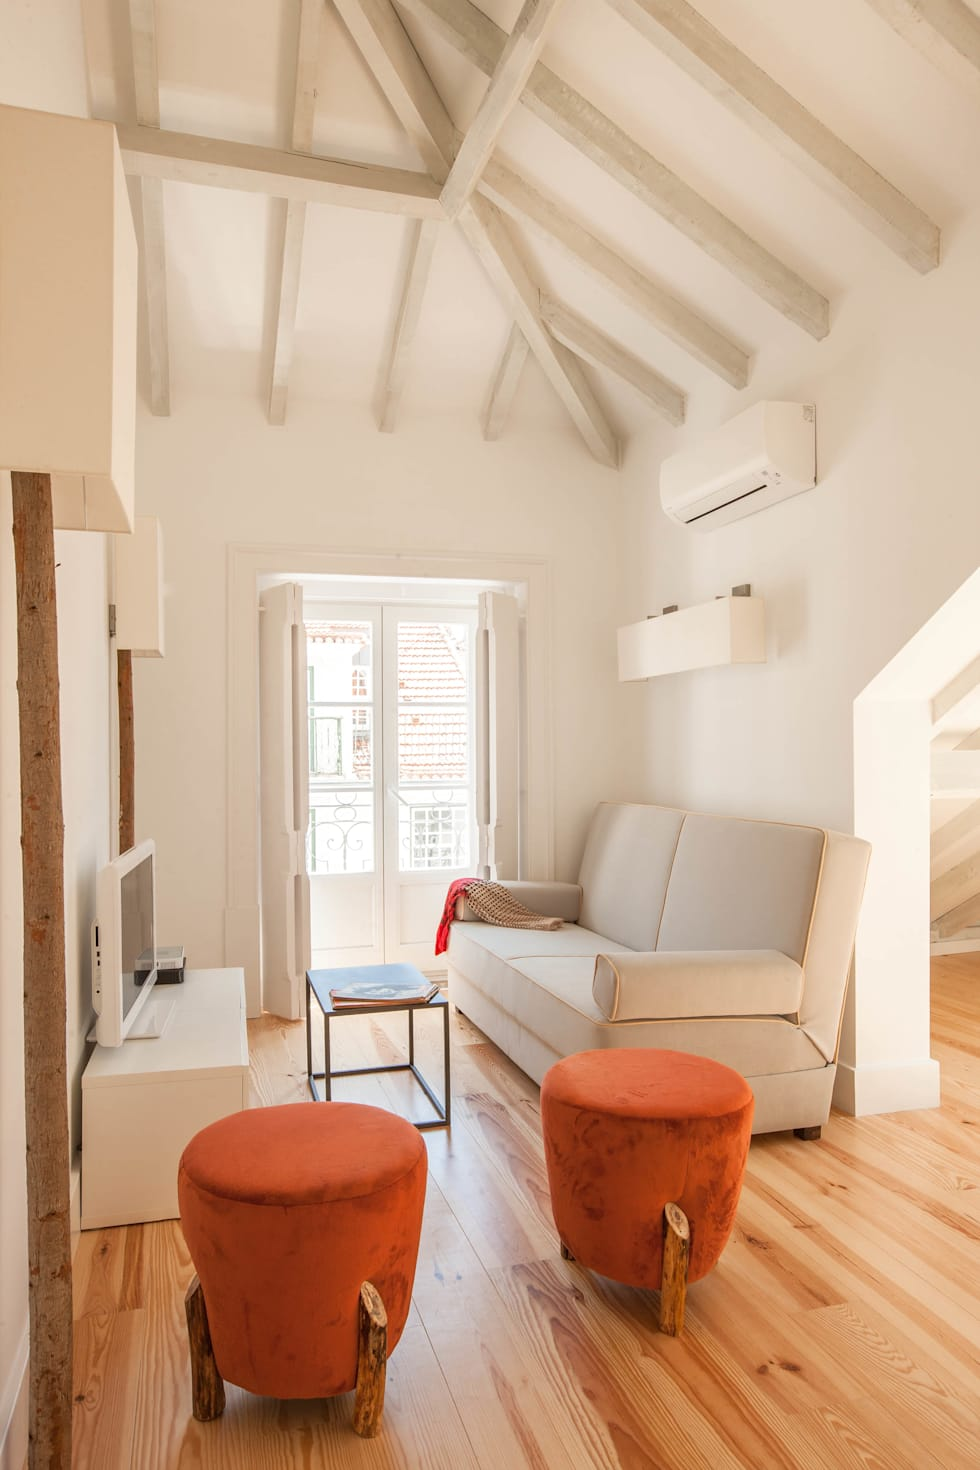 This dream apartment in Lisbon is loaded with delicate finesse